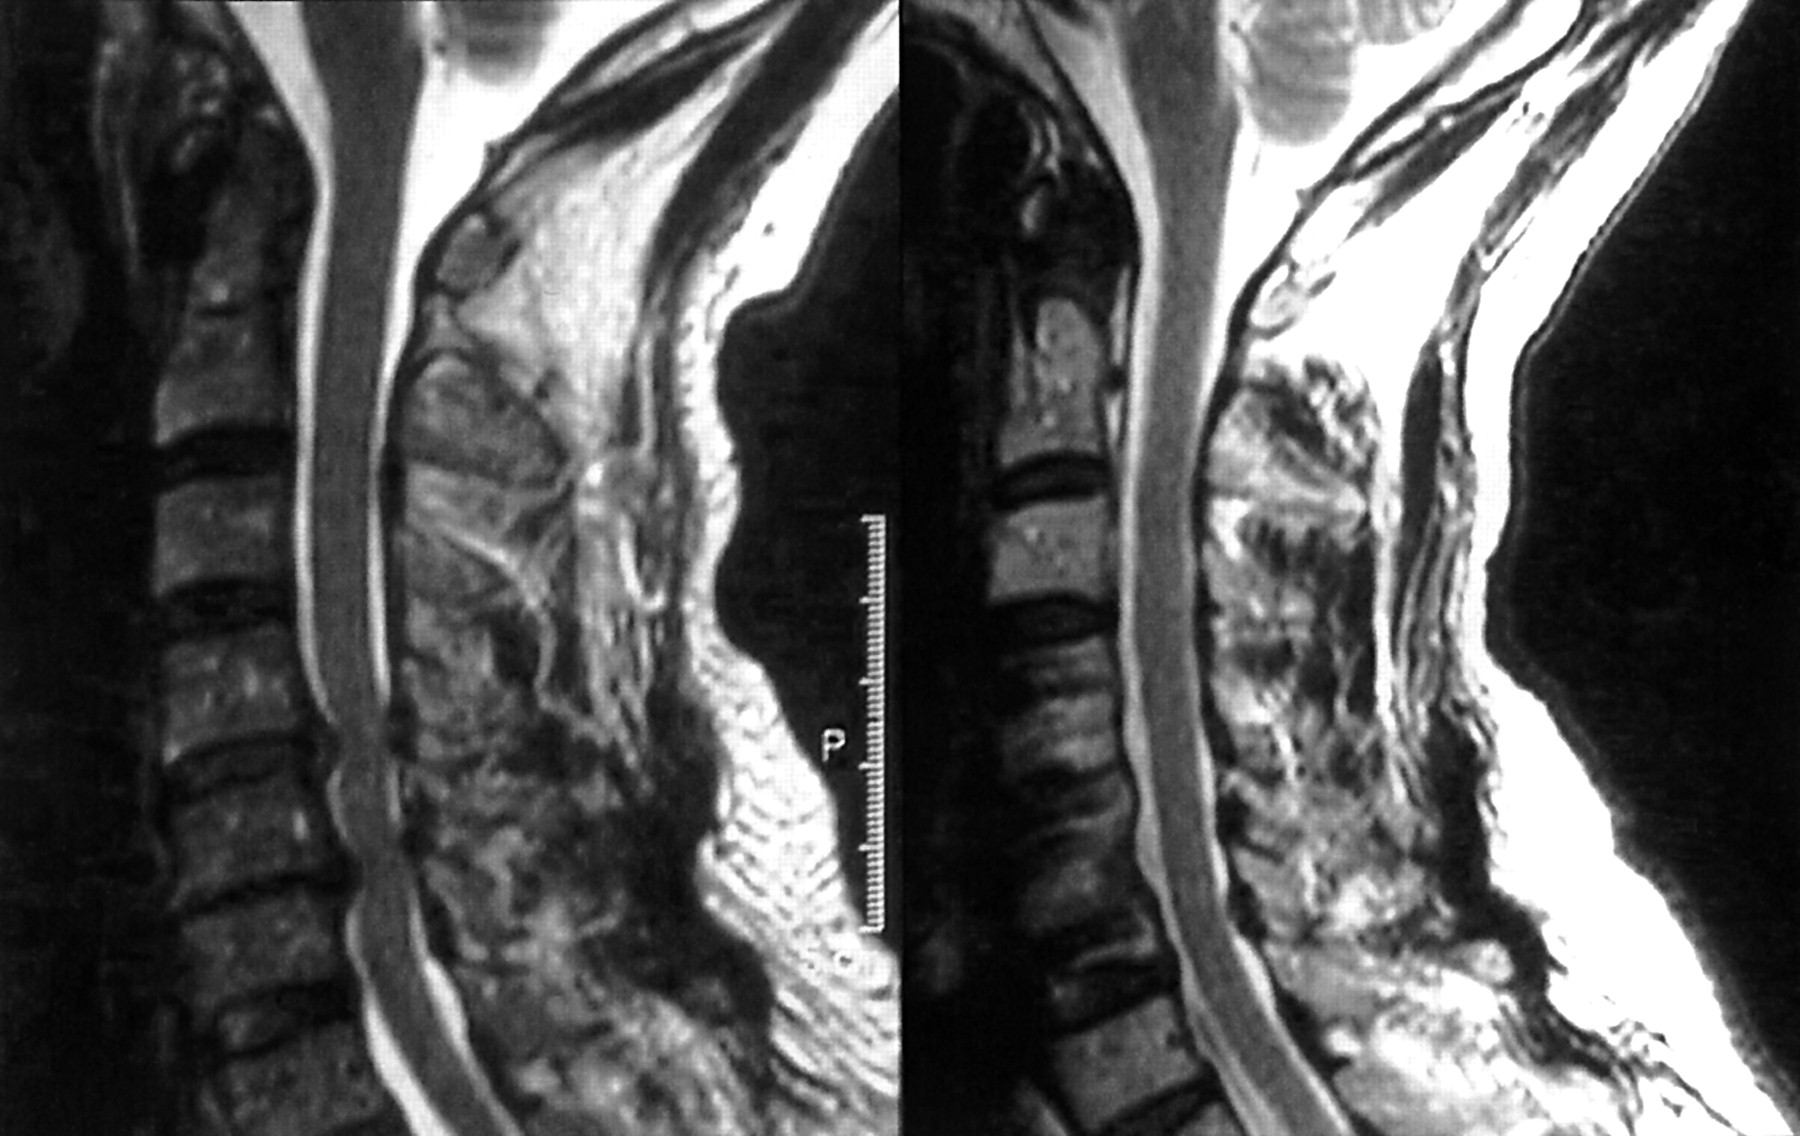 surgical disorders of the cervical spine presentation and